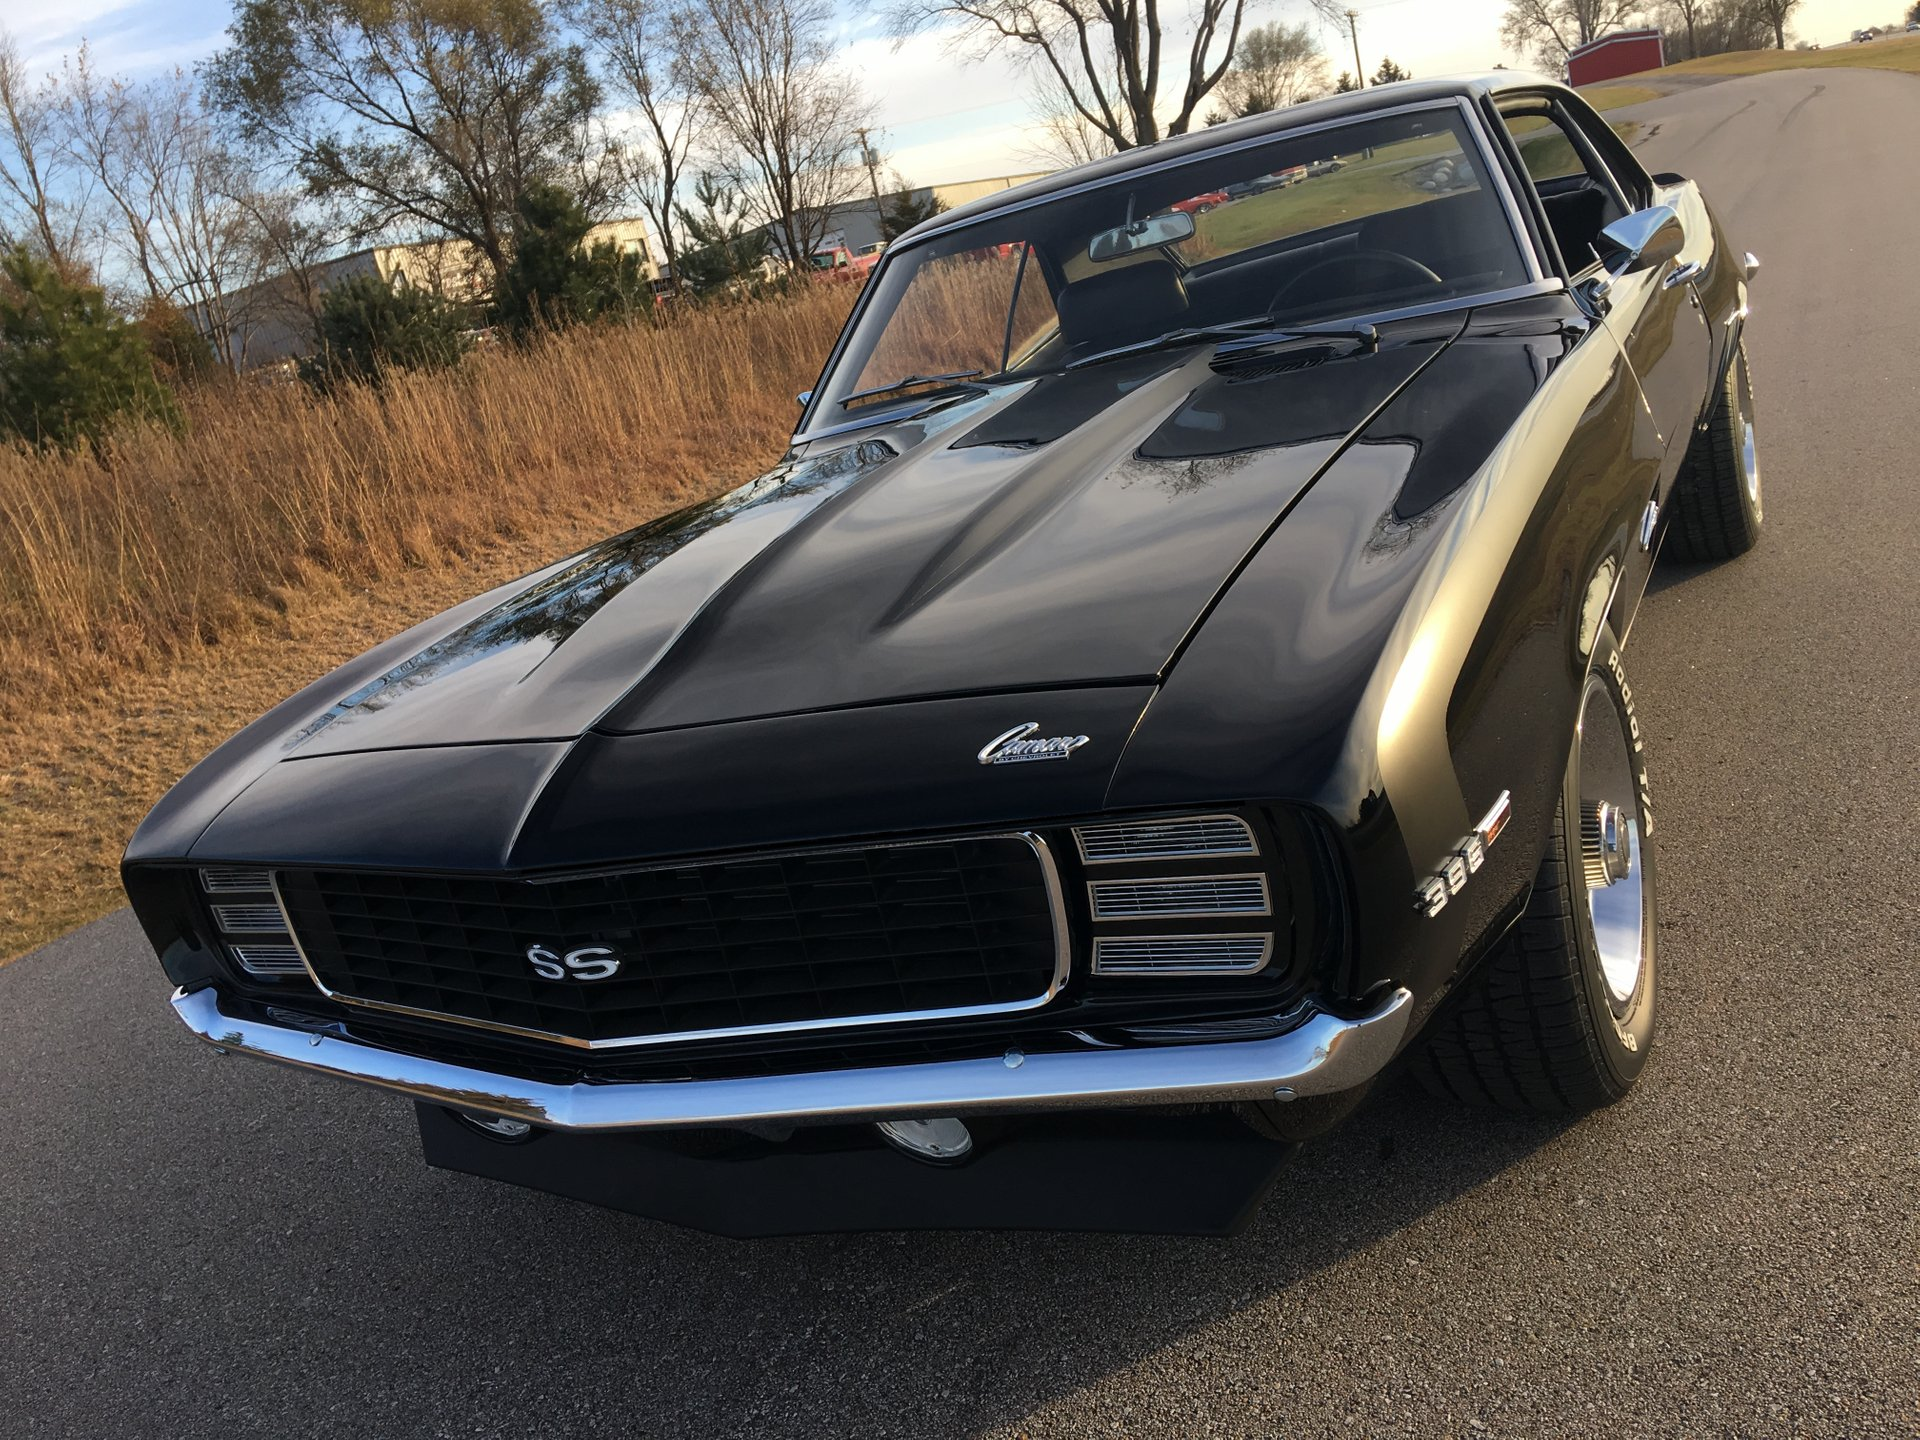 1969 Chevrolet Camaro Restore A Muscle Car Llc